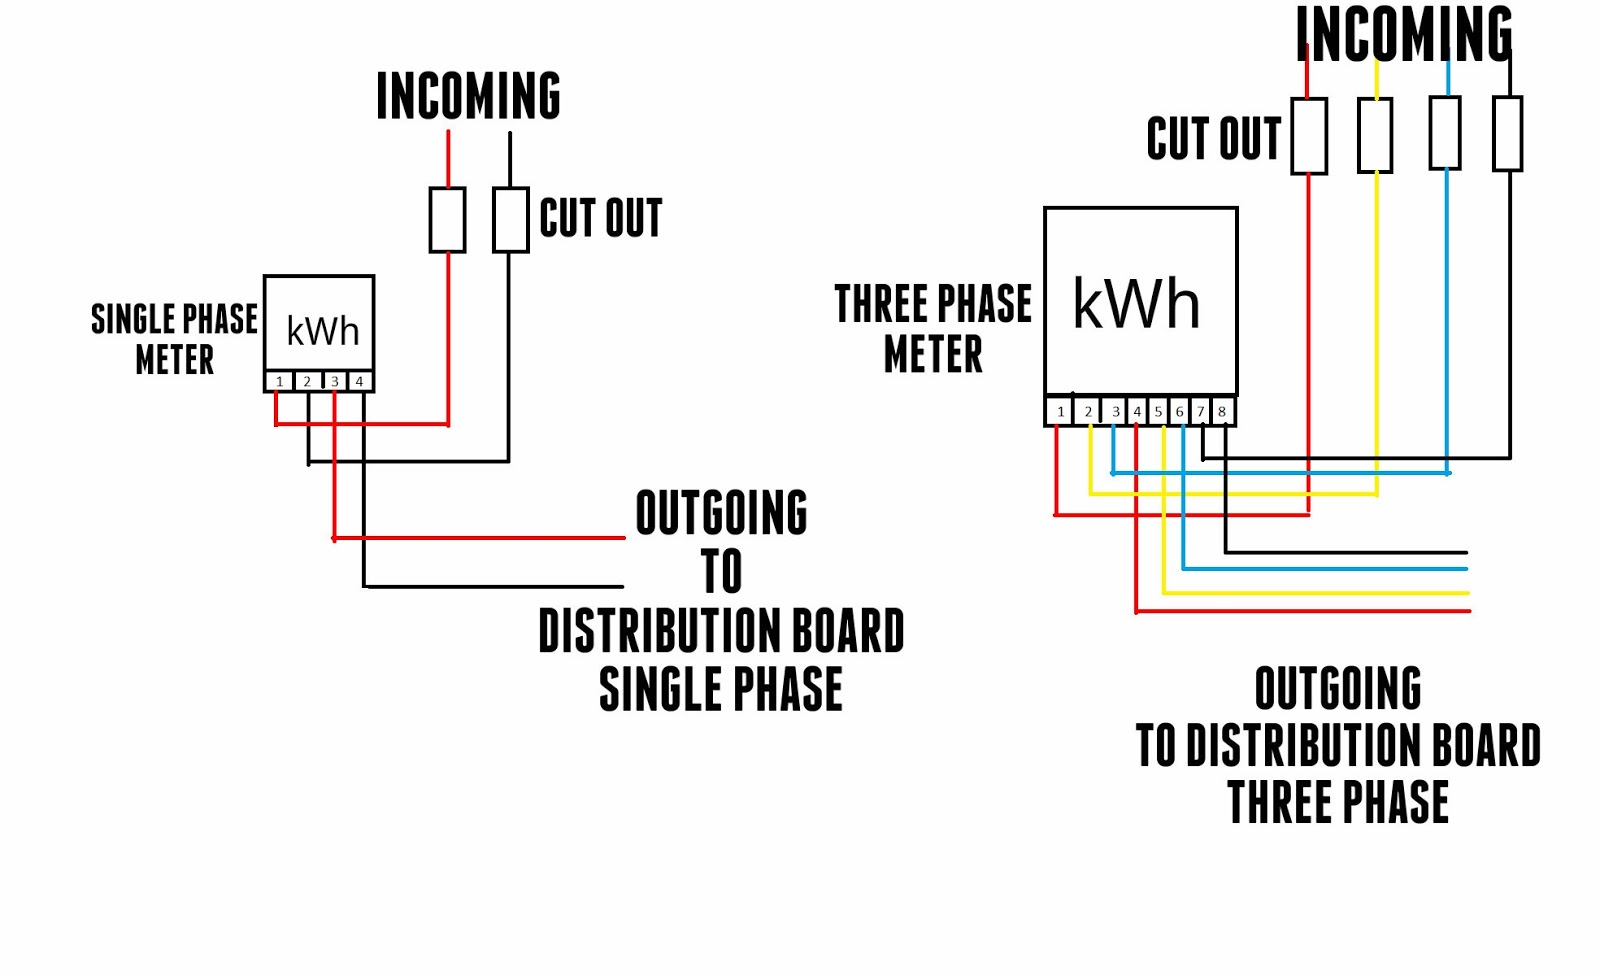 The world through electricity kilo watt hour meter kwh